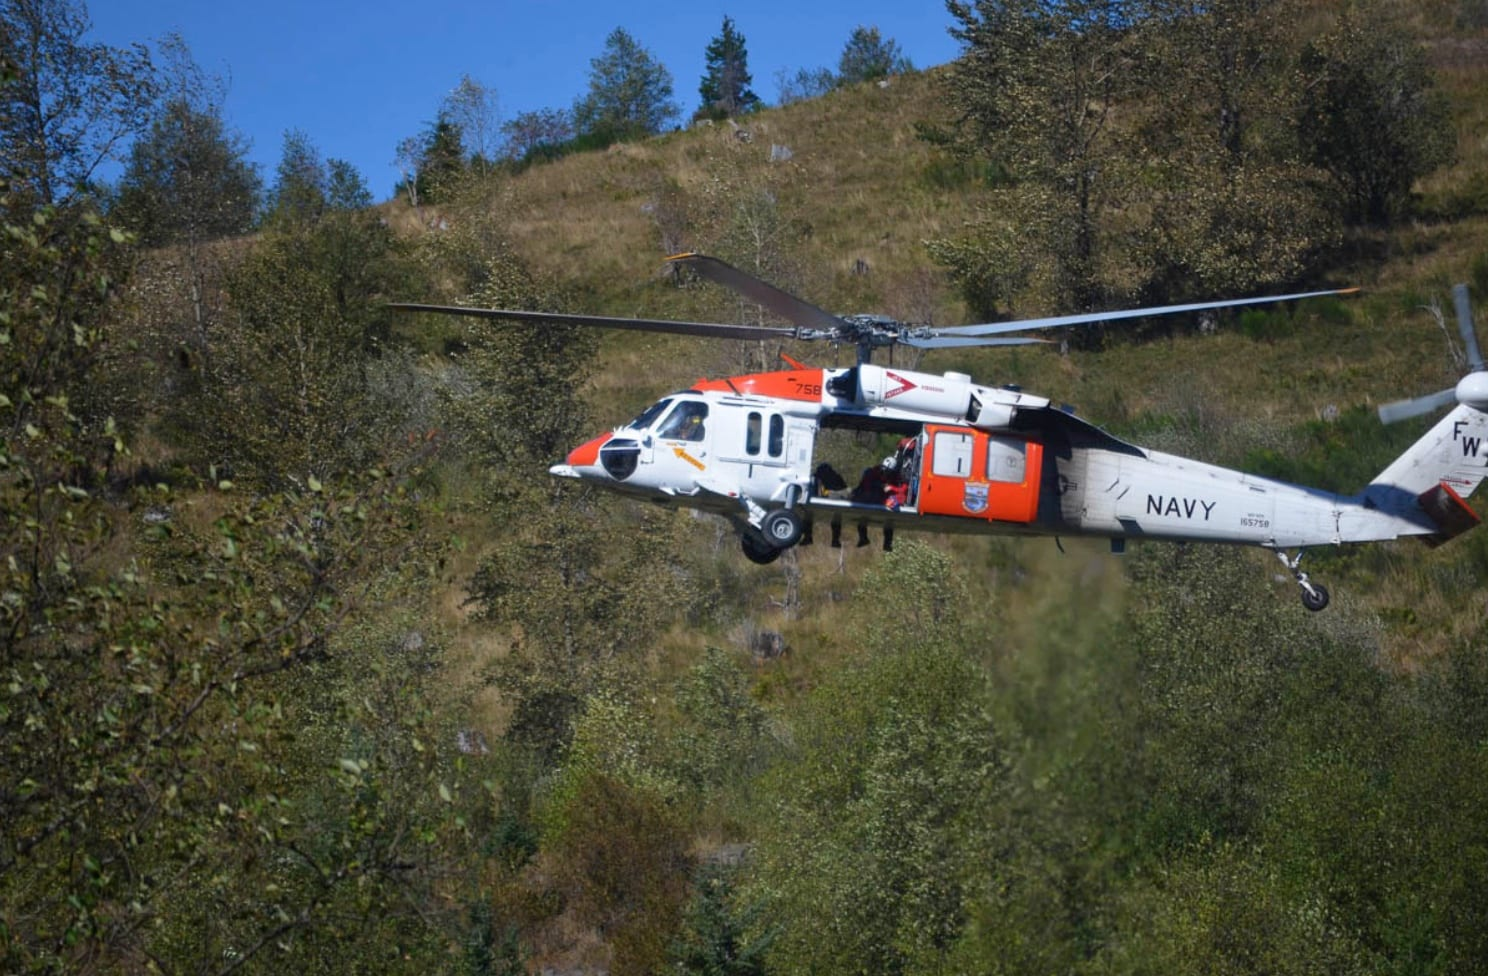 Thermal drone finds missing teen after two days near Mt. St. Helens